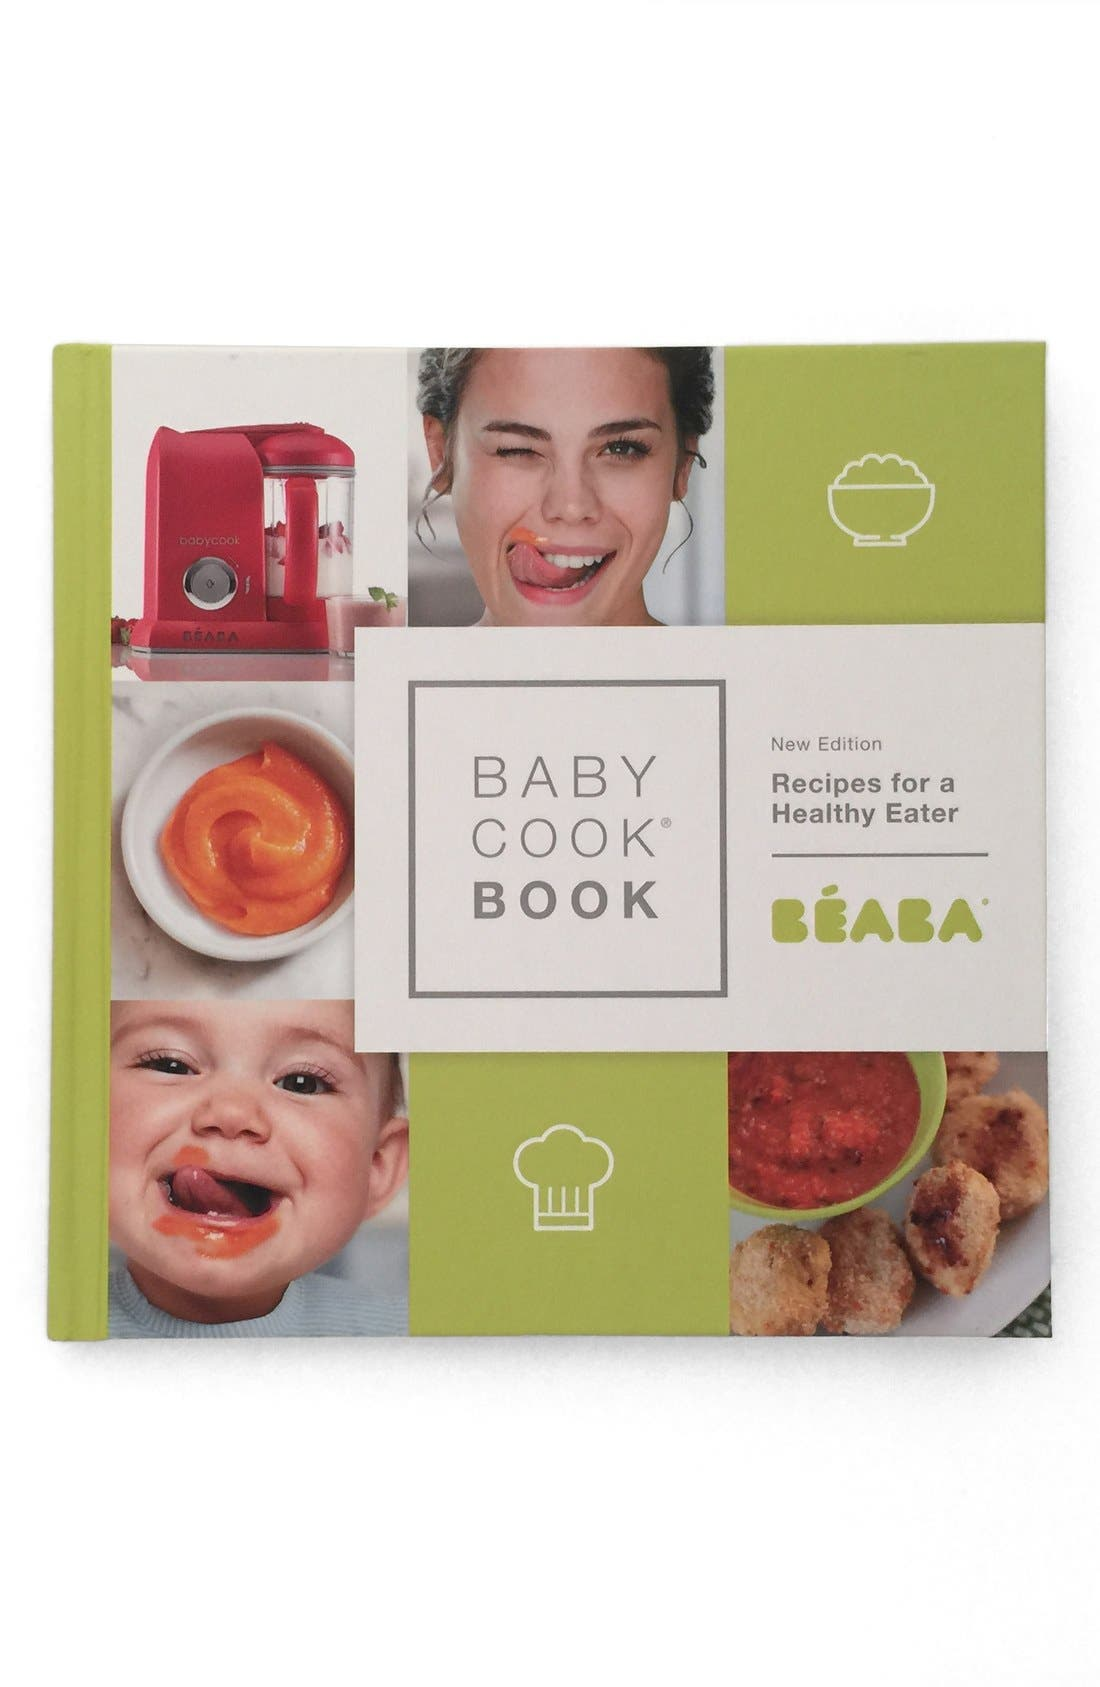 'Babycook® Book: Recipes For a Healthy Eater - New Edition' Recipe Book